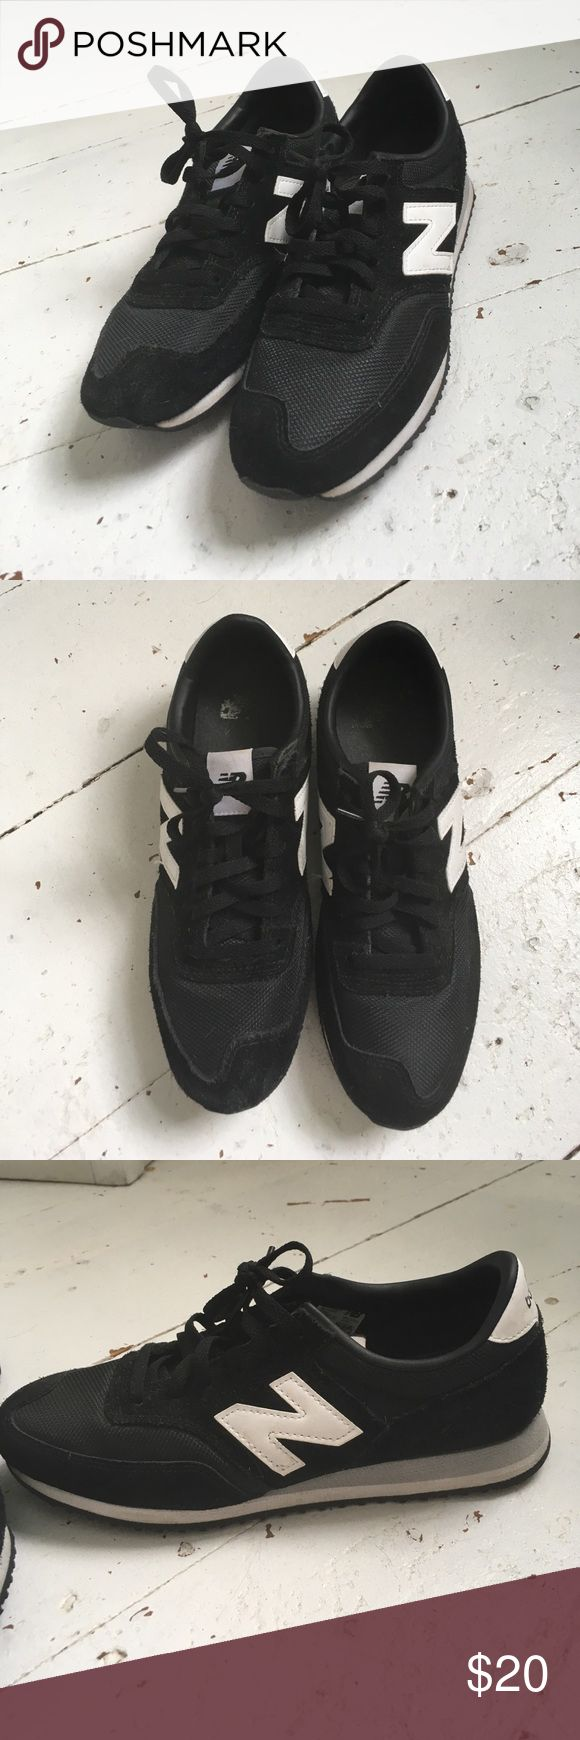 Black new balance sneakers size 9 New balance sneakers worn once or twice, great condition New Balance Shoes Sneakers